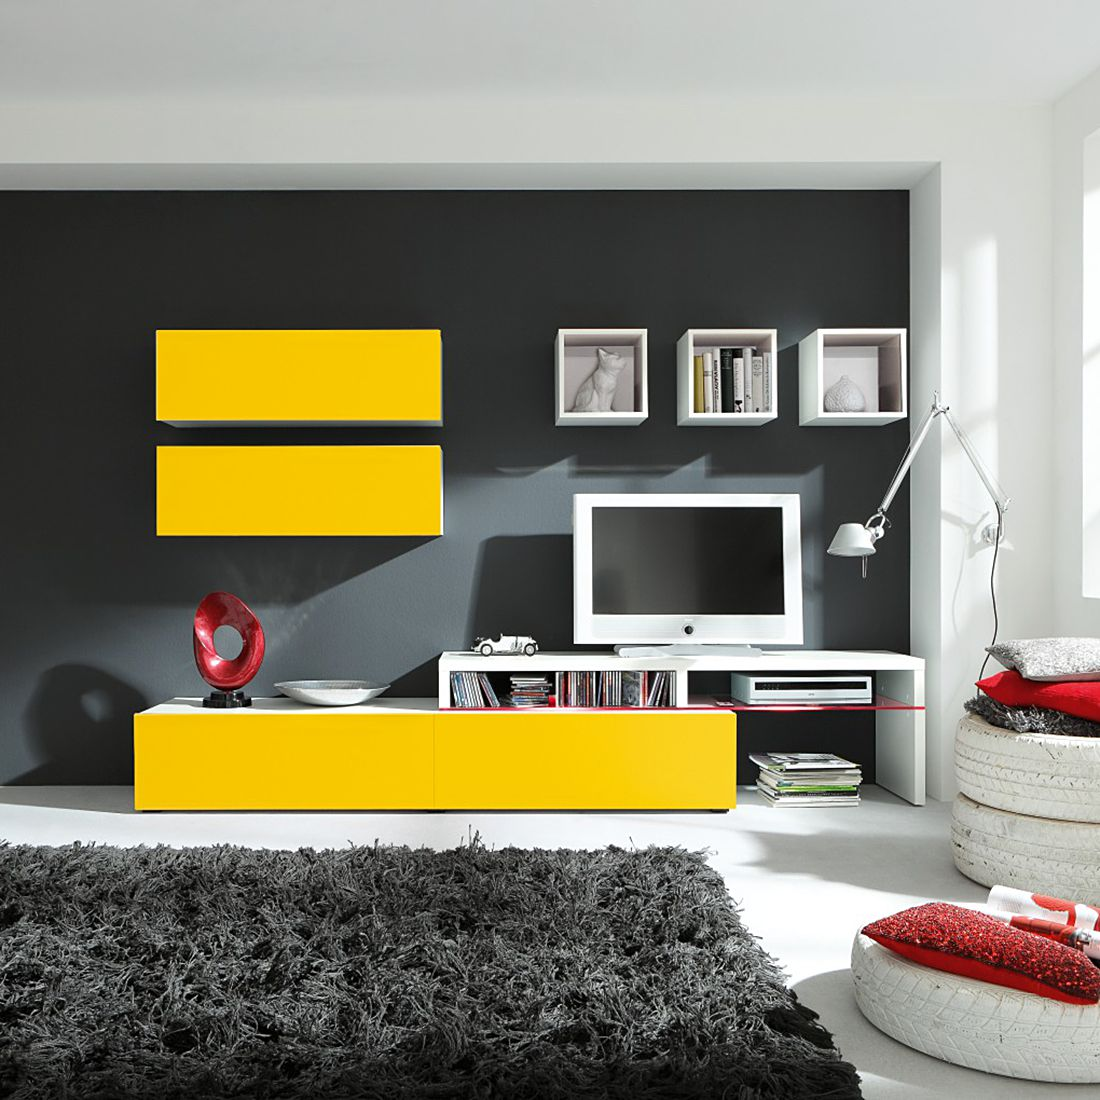 wohnwand colourart 6 teilig gelb wei ohne beleuchtung cs schmal g nstig bestellen. Black Bedroom Furniture Sets. Home Design Ideas